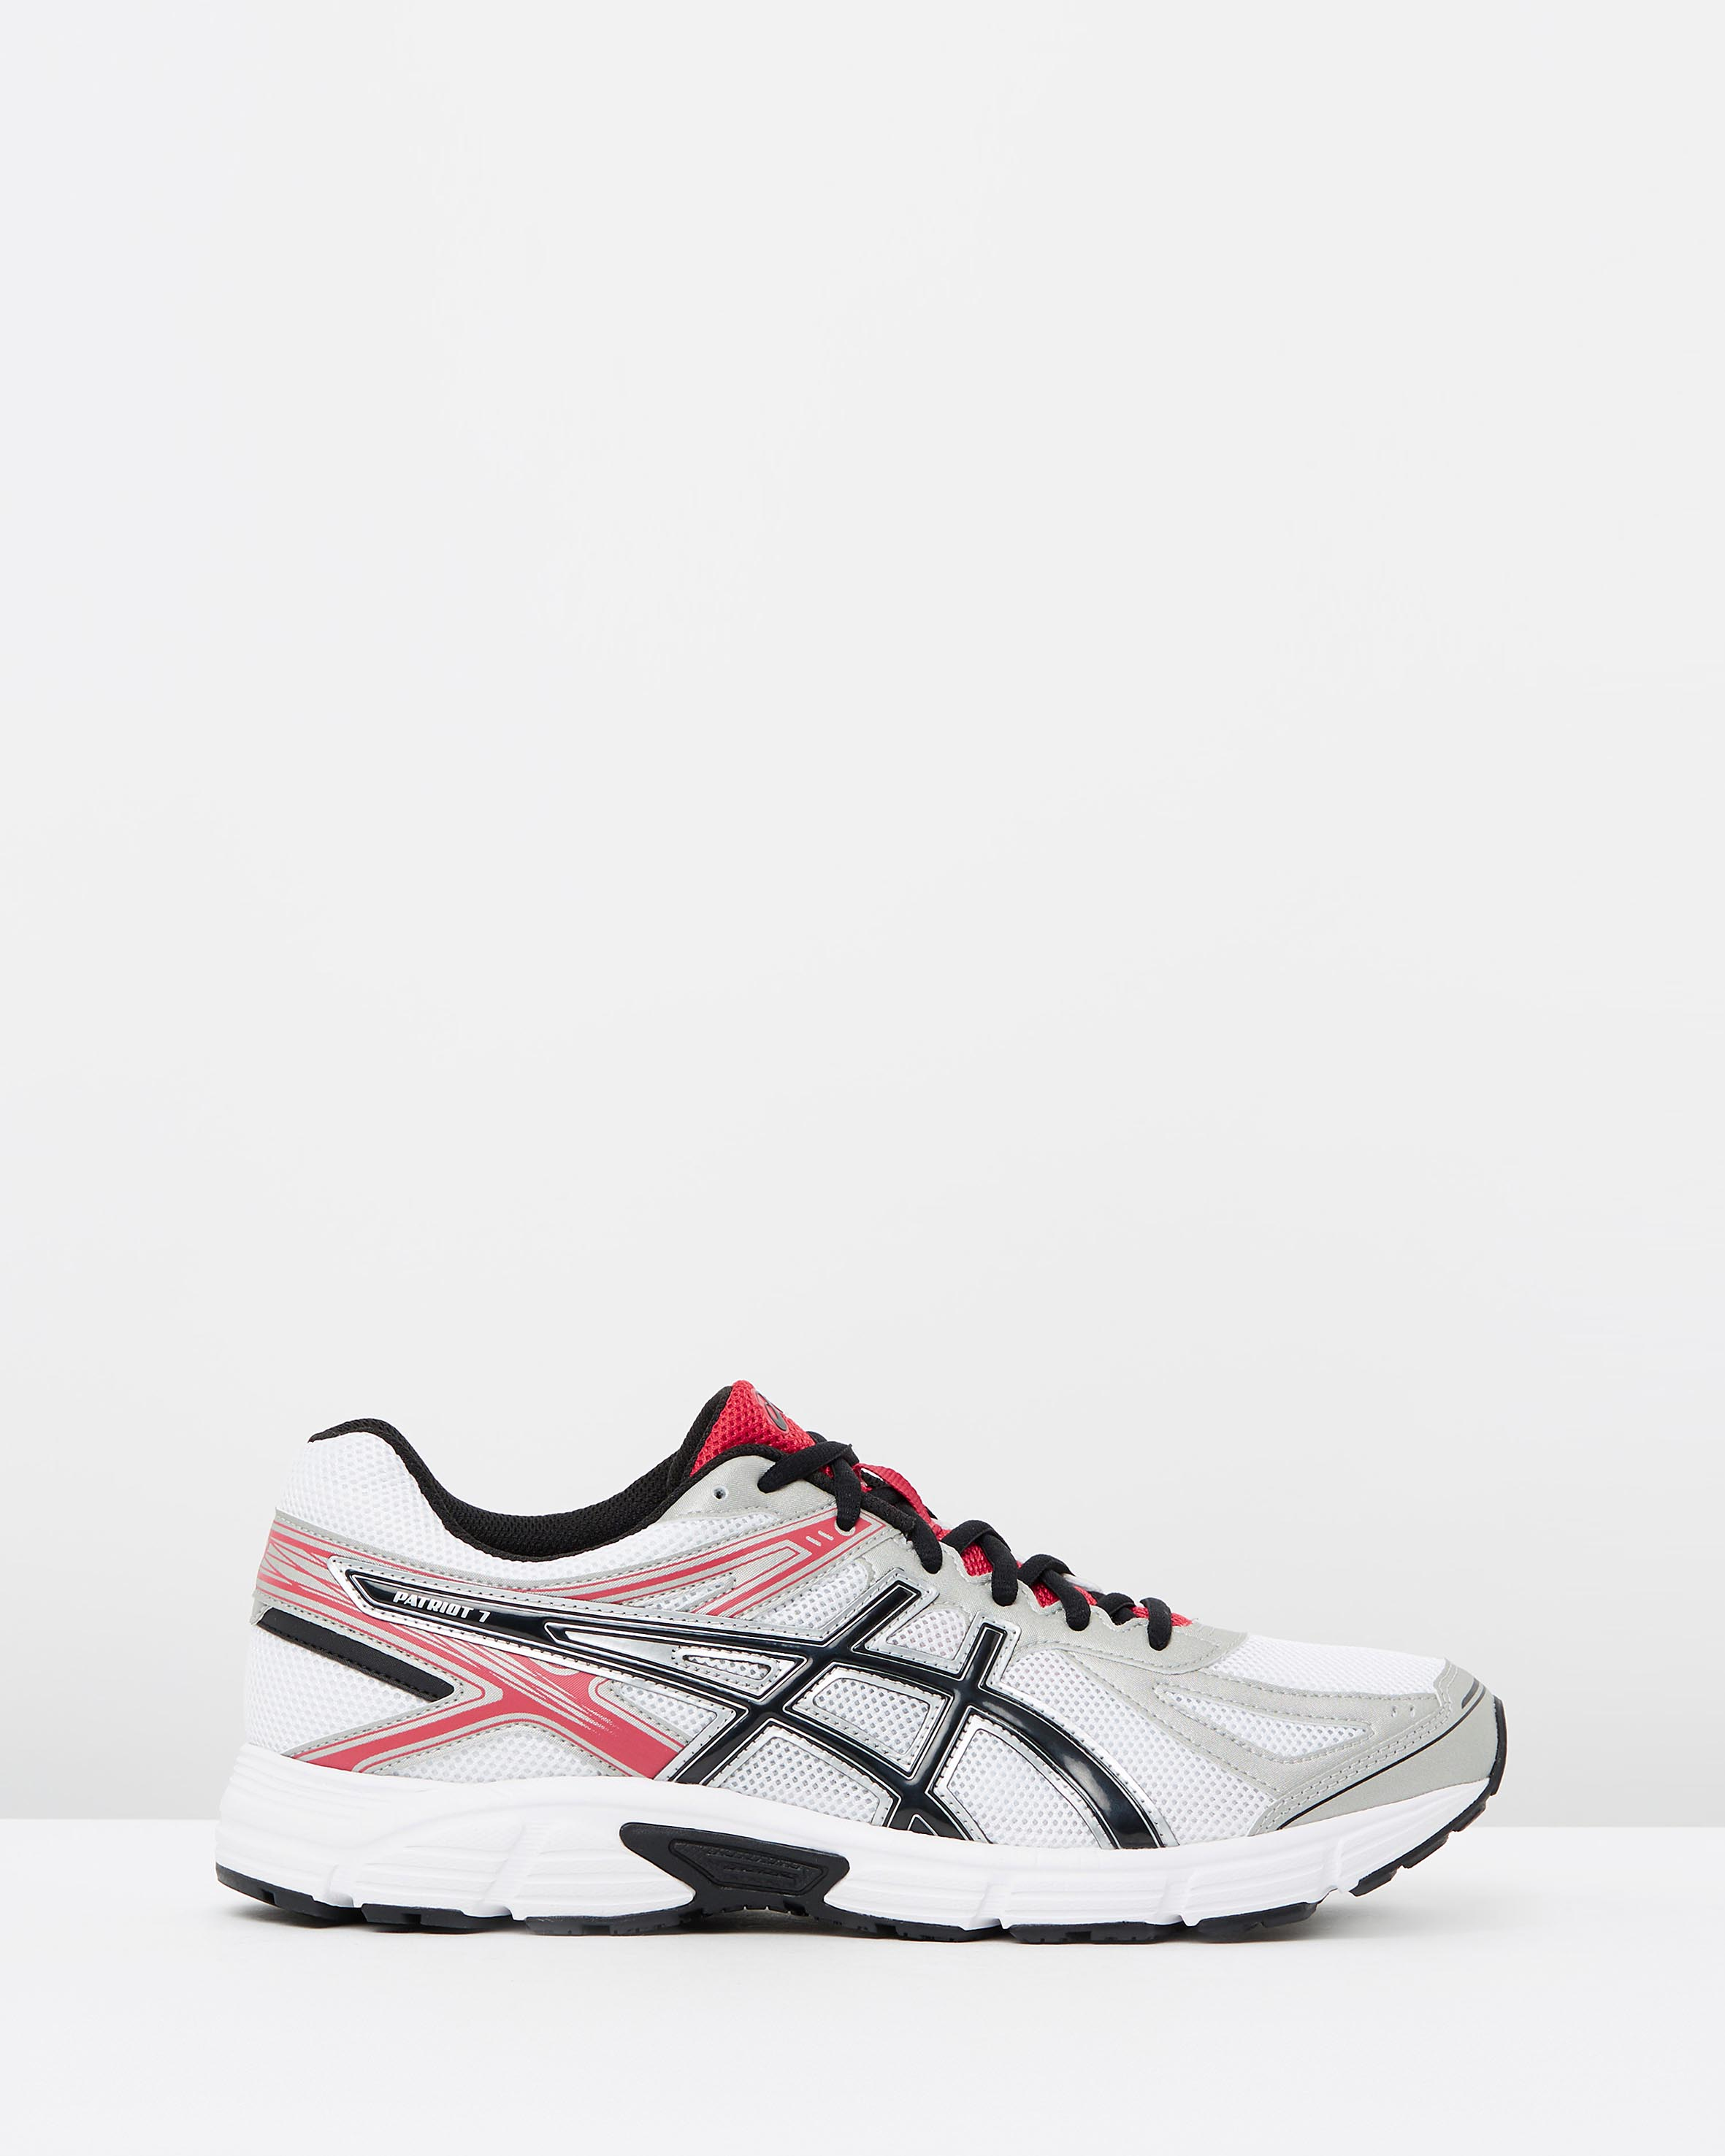 v3g3vkms outlet asics shoes in australia